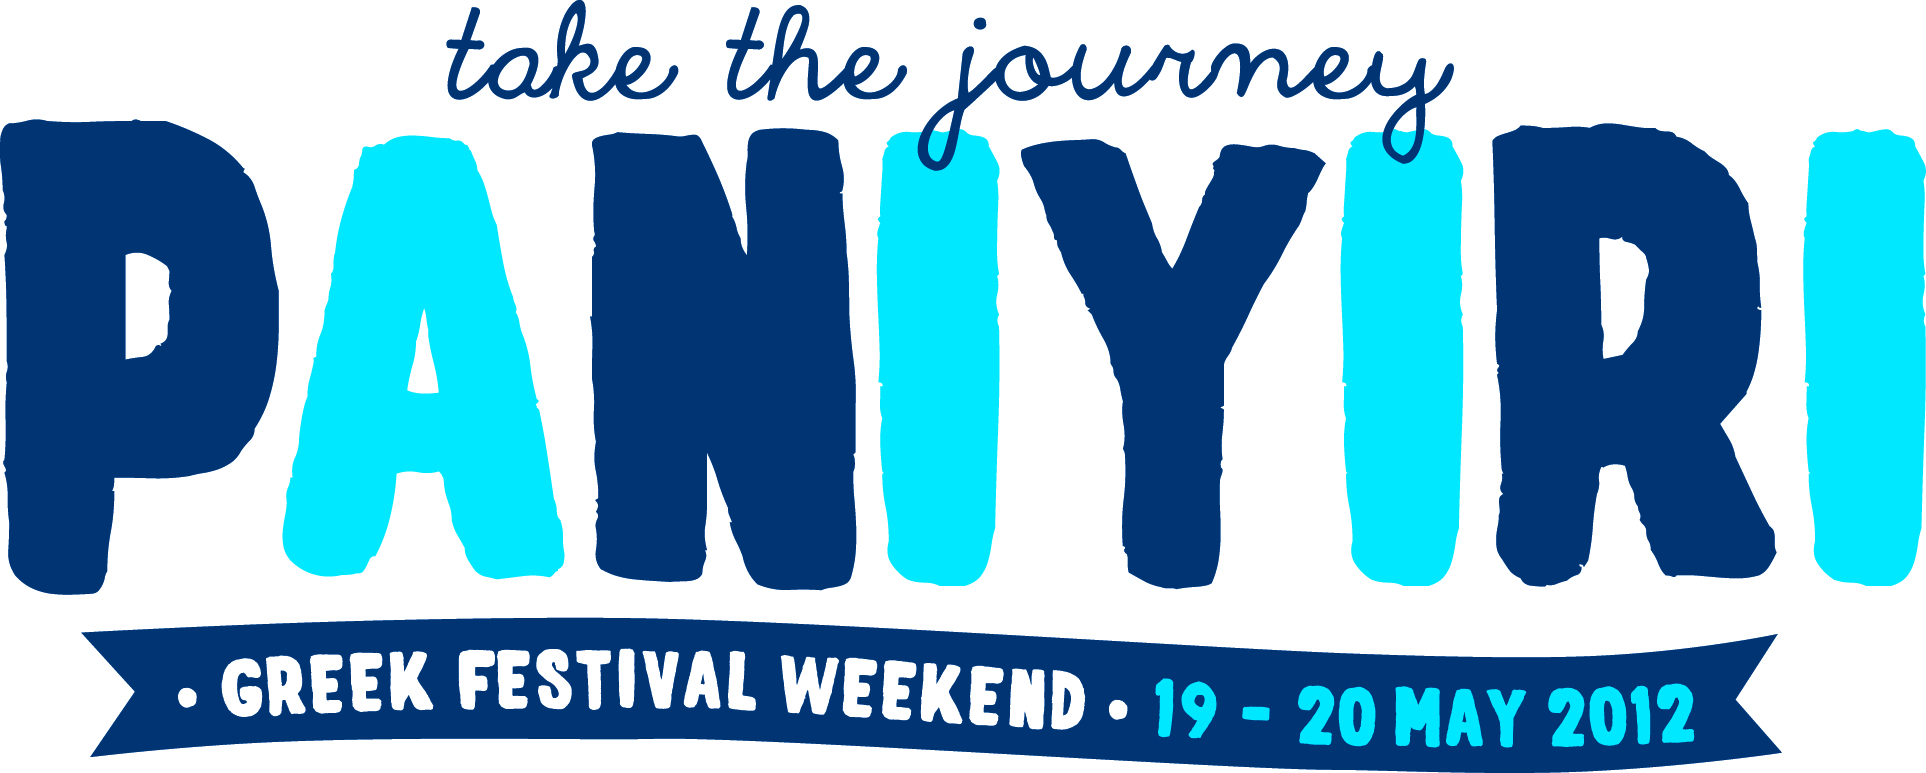 Tickets for Paniyiri Greek Festival 2012 in South Brisbane from GreenTix